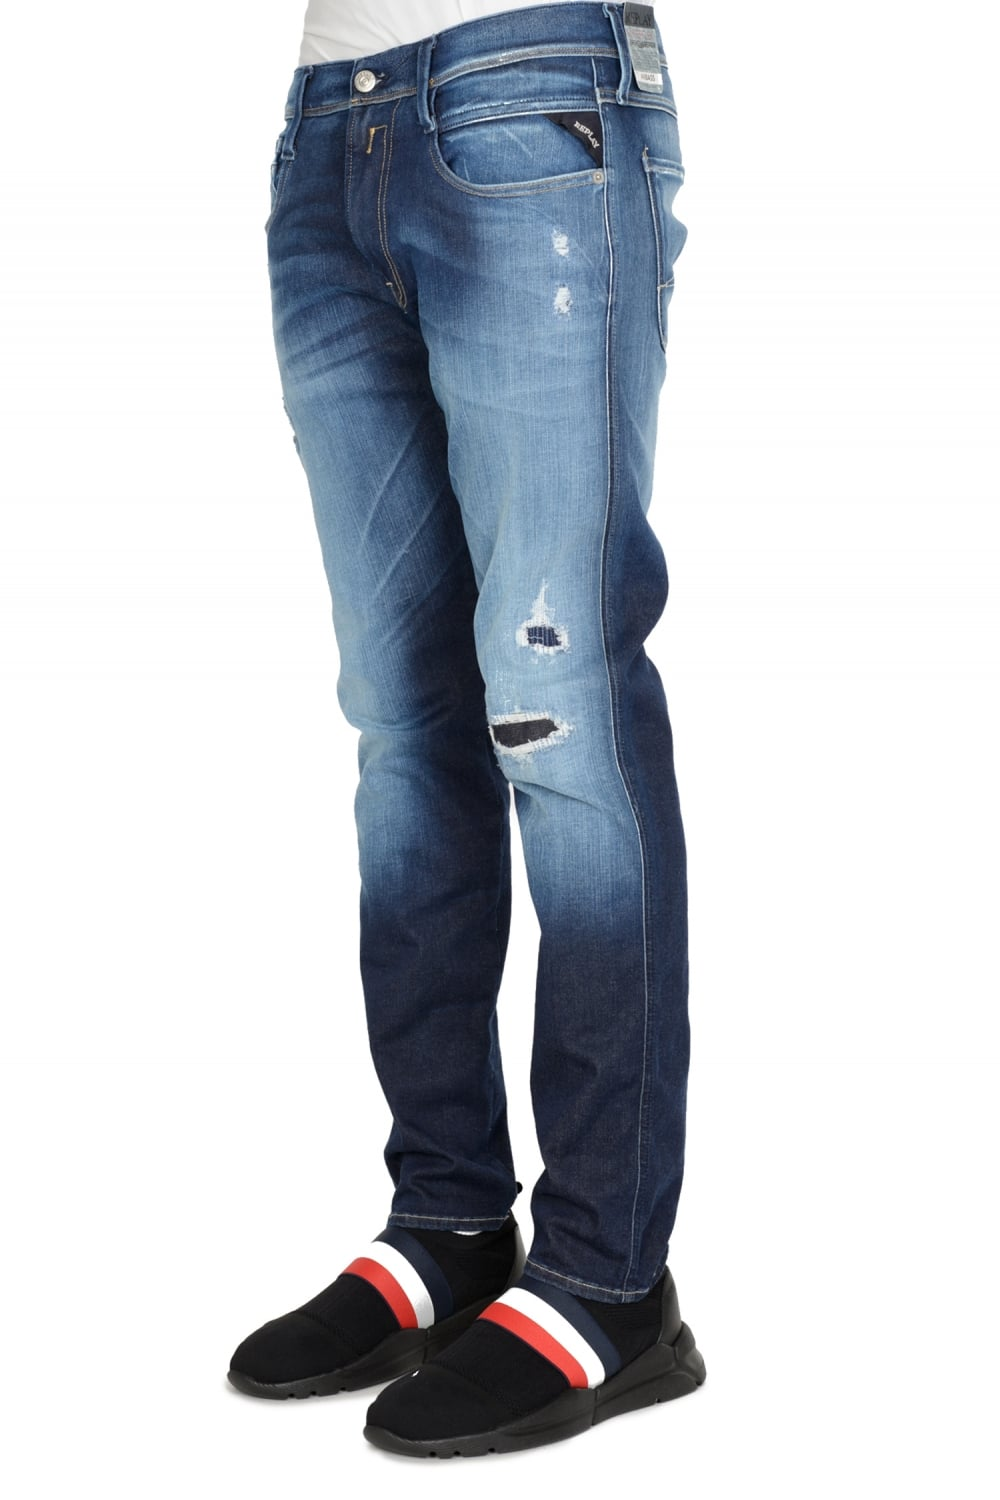 04d65523b00309 Replay Anbass Vintage Jeans